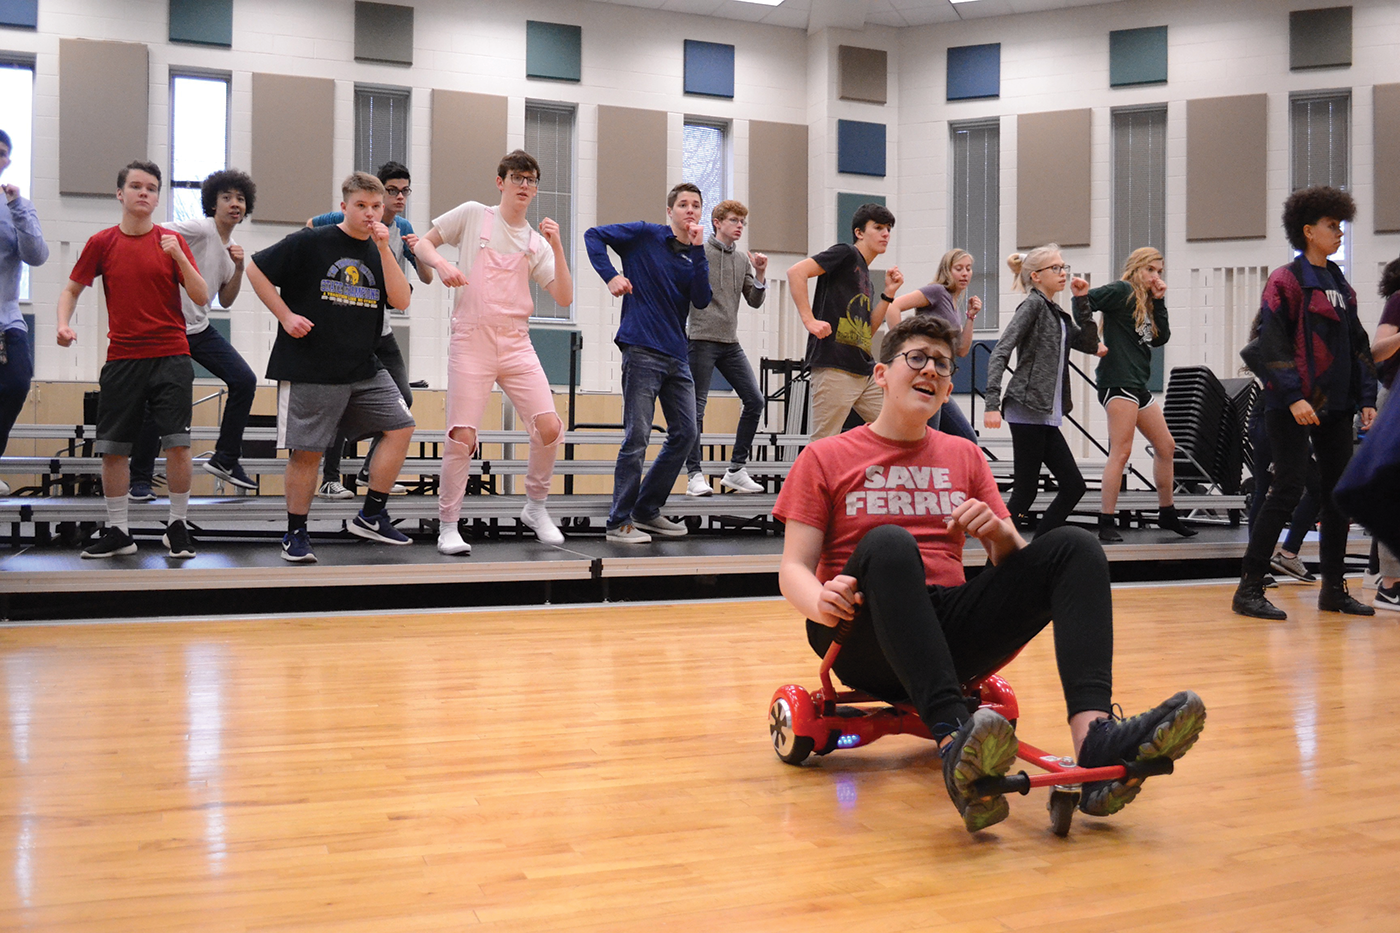 """""""The Little Mermaid"""" cast members practice a scene from the play. Jack Ducat, shown above riding the hoverboard, said he believes the modernization of the play allows for more possibilities for portraying the environment better while also giving the audience something different from past plays."""